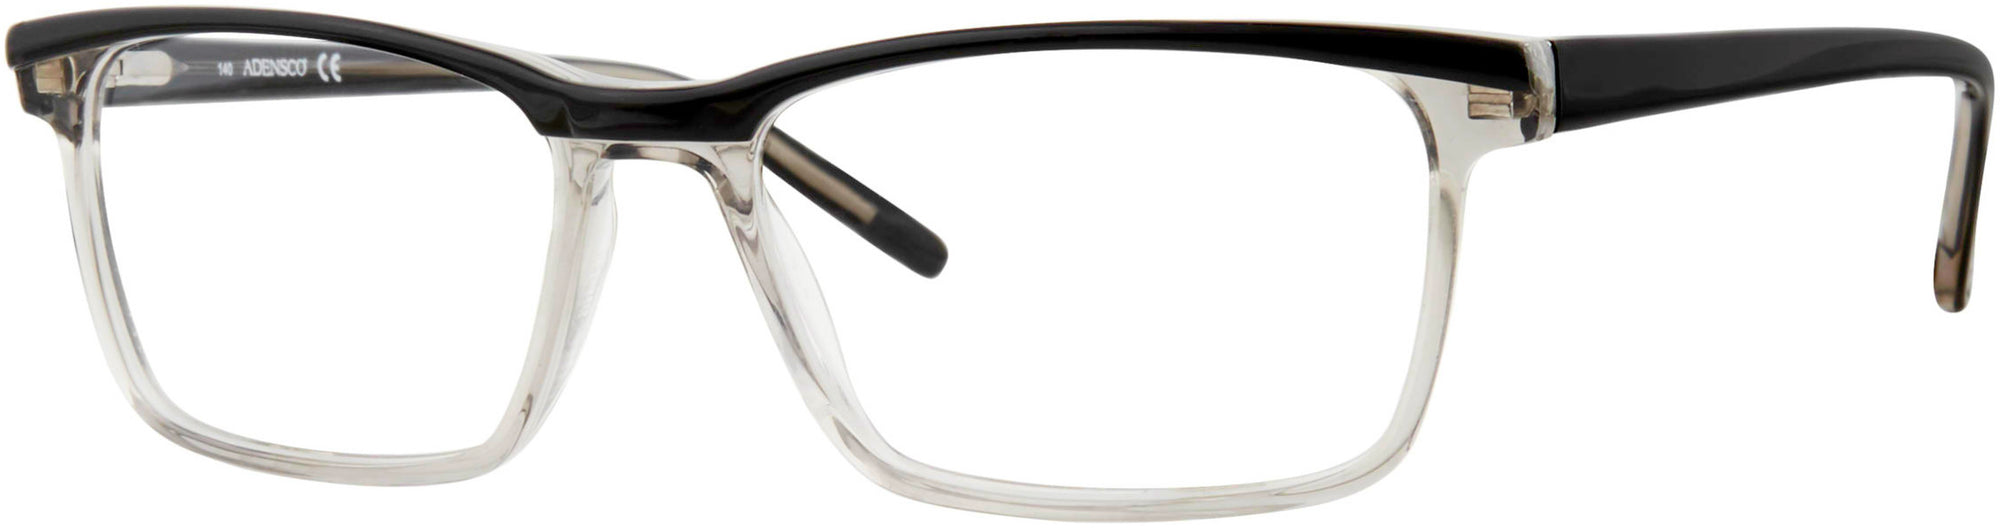 Adensco AD 119 Rectangular Eyeglasses 0EDM-0EDM  Black Gray Black (00 Demo Lens)